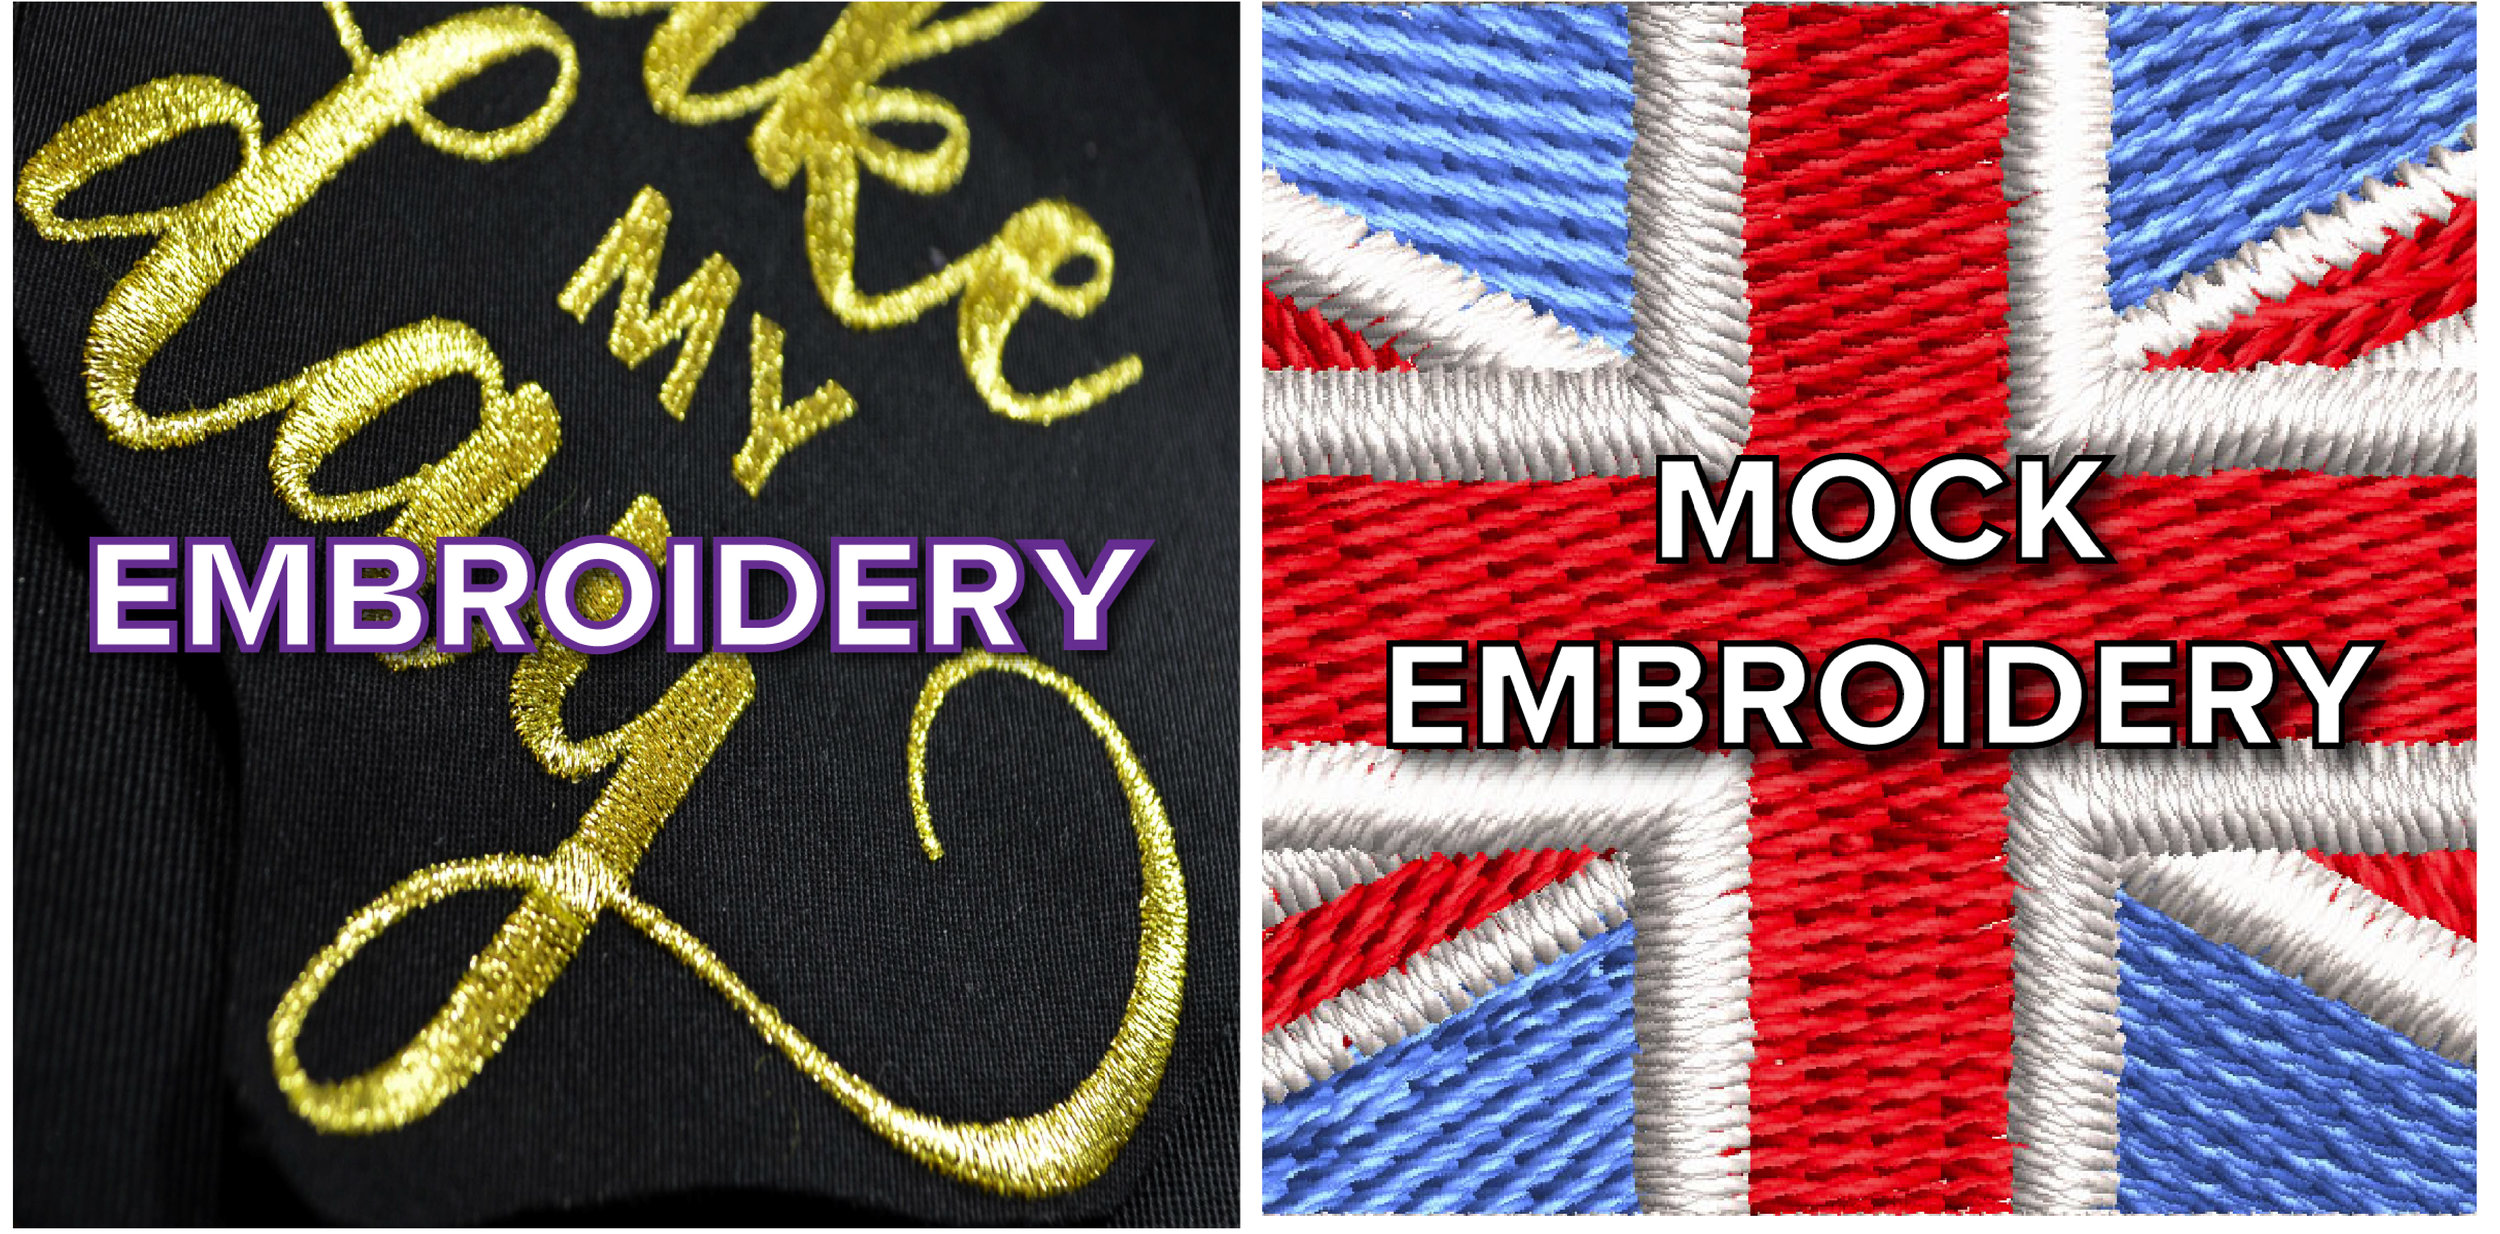 embroidery and mock emb.jpg